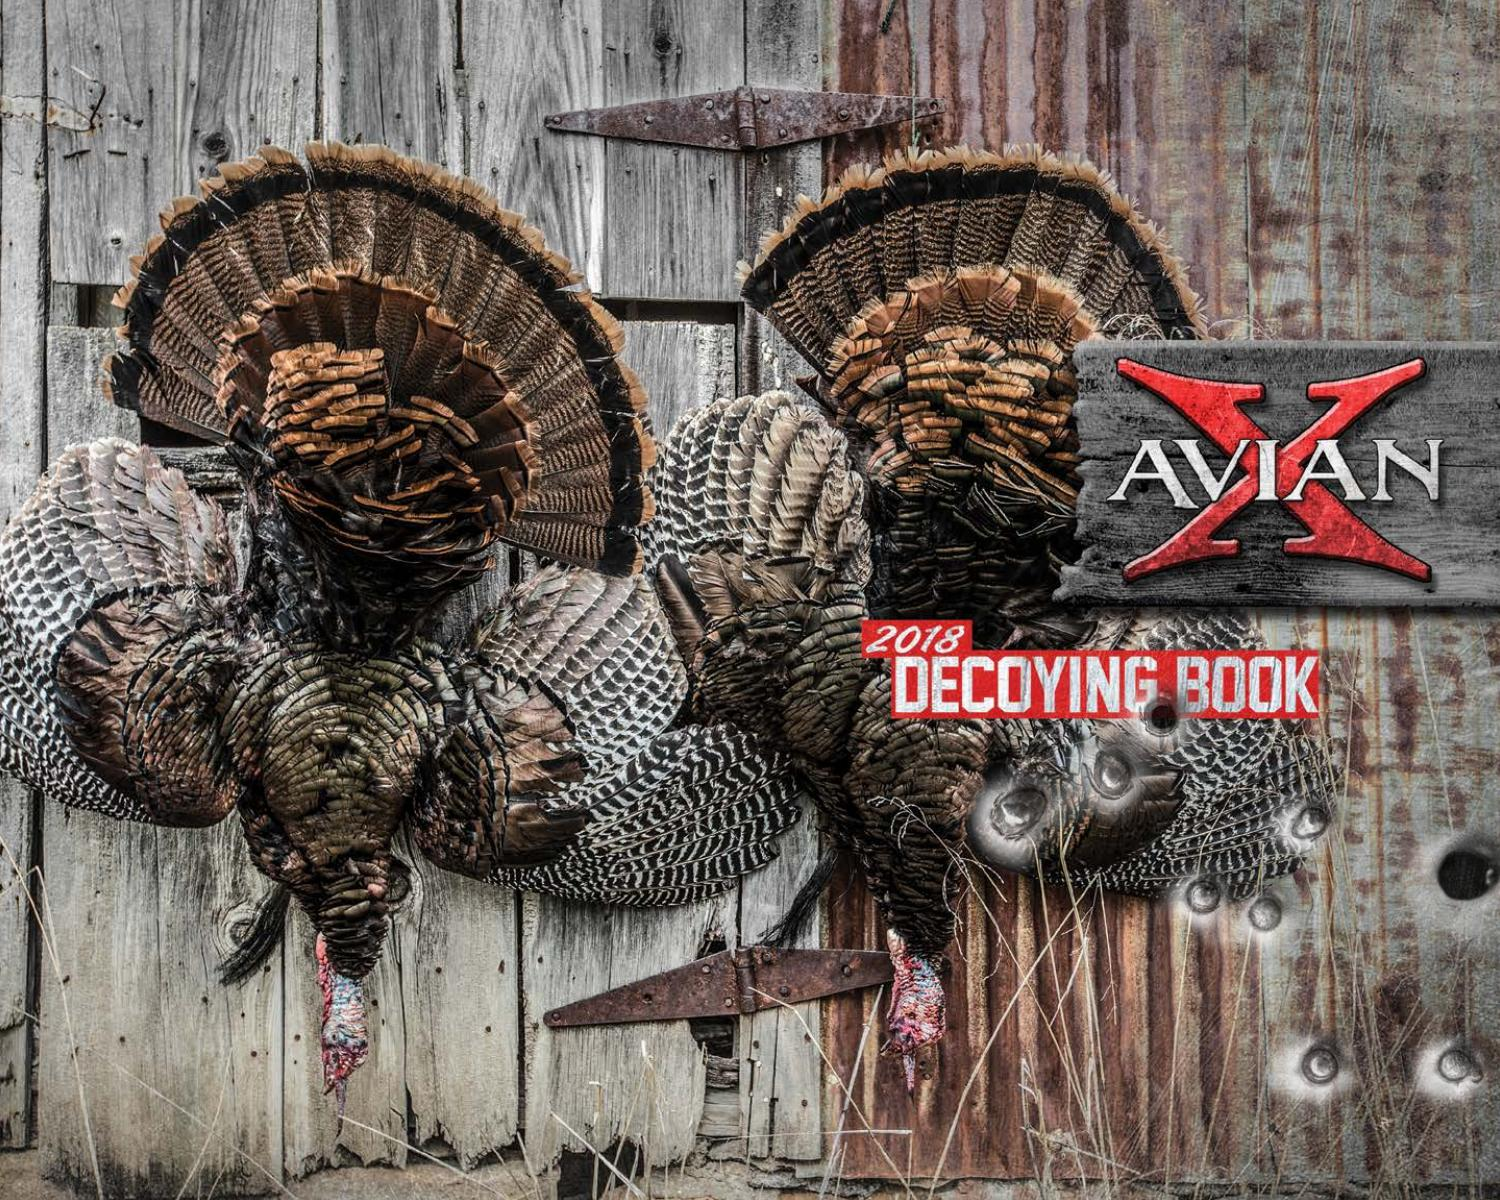 2018 Avian X Catalog By Planosynergy Issuu